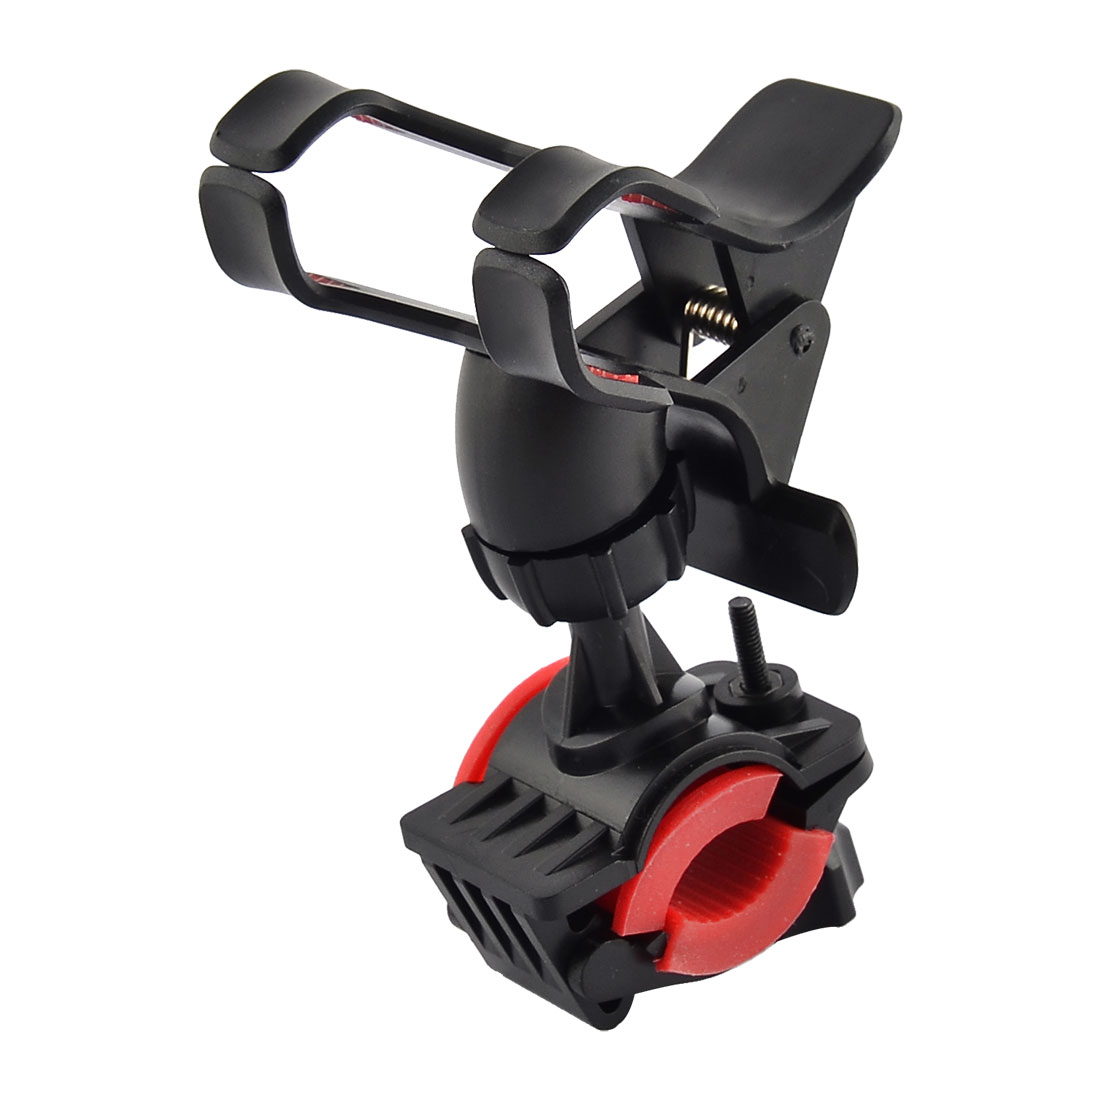 Universal 360 Degrees Rotating Bicycle GPS MTB Phone Support Handlebar Mount Holder